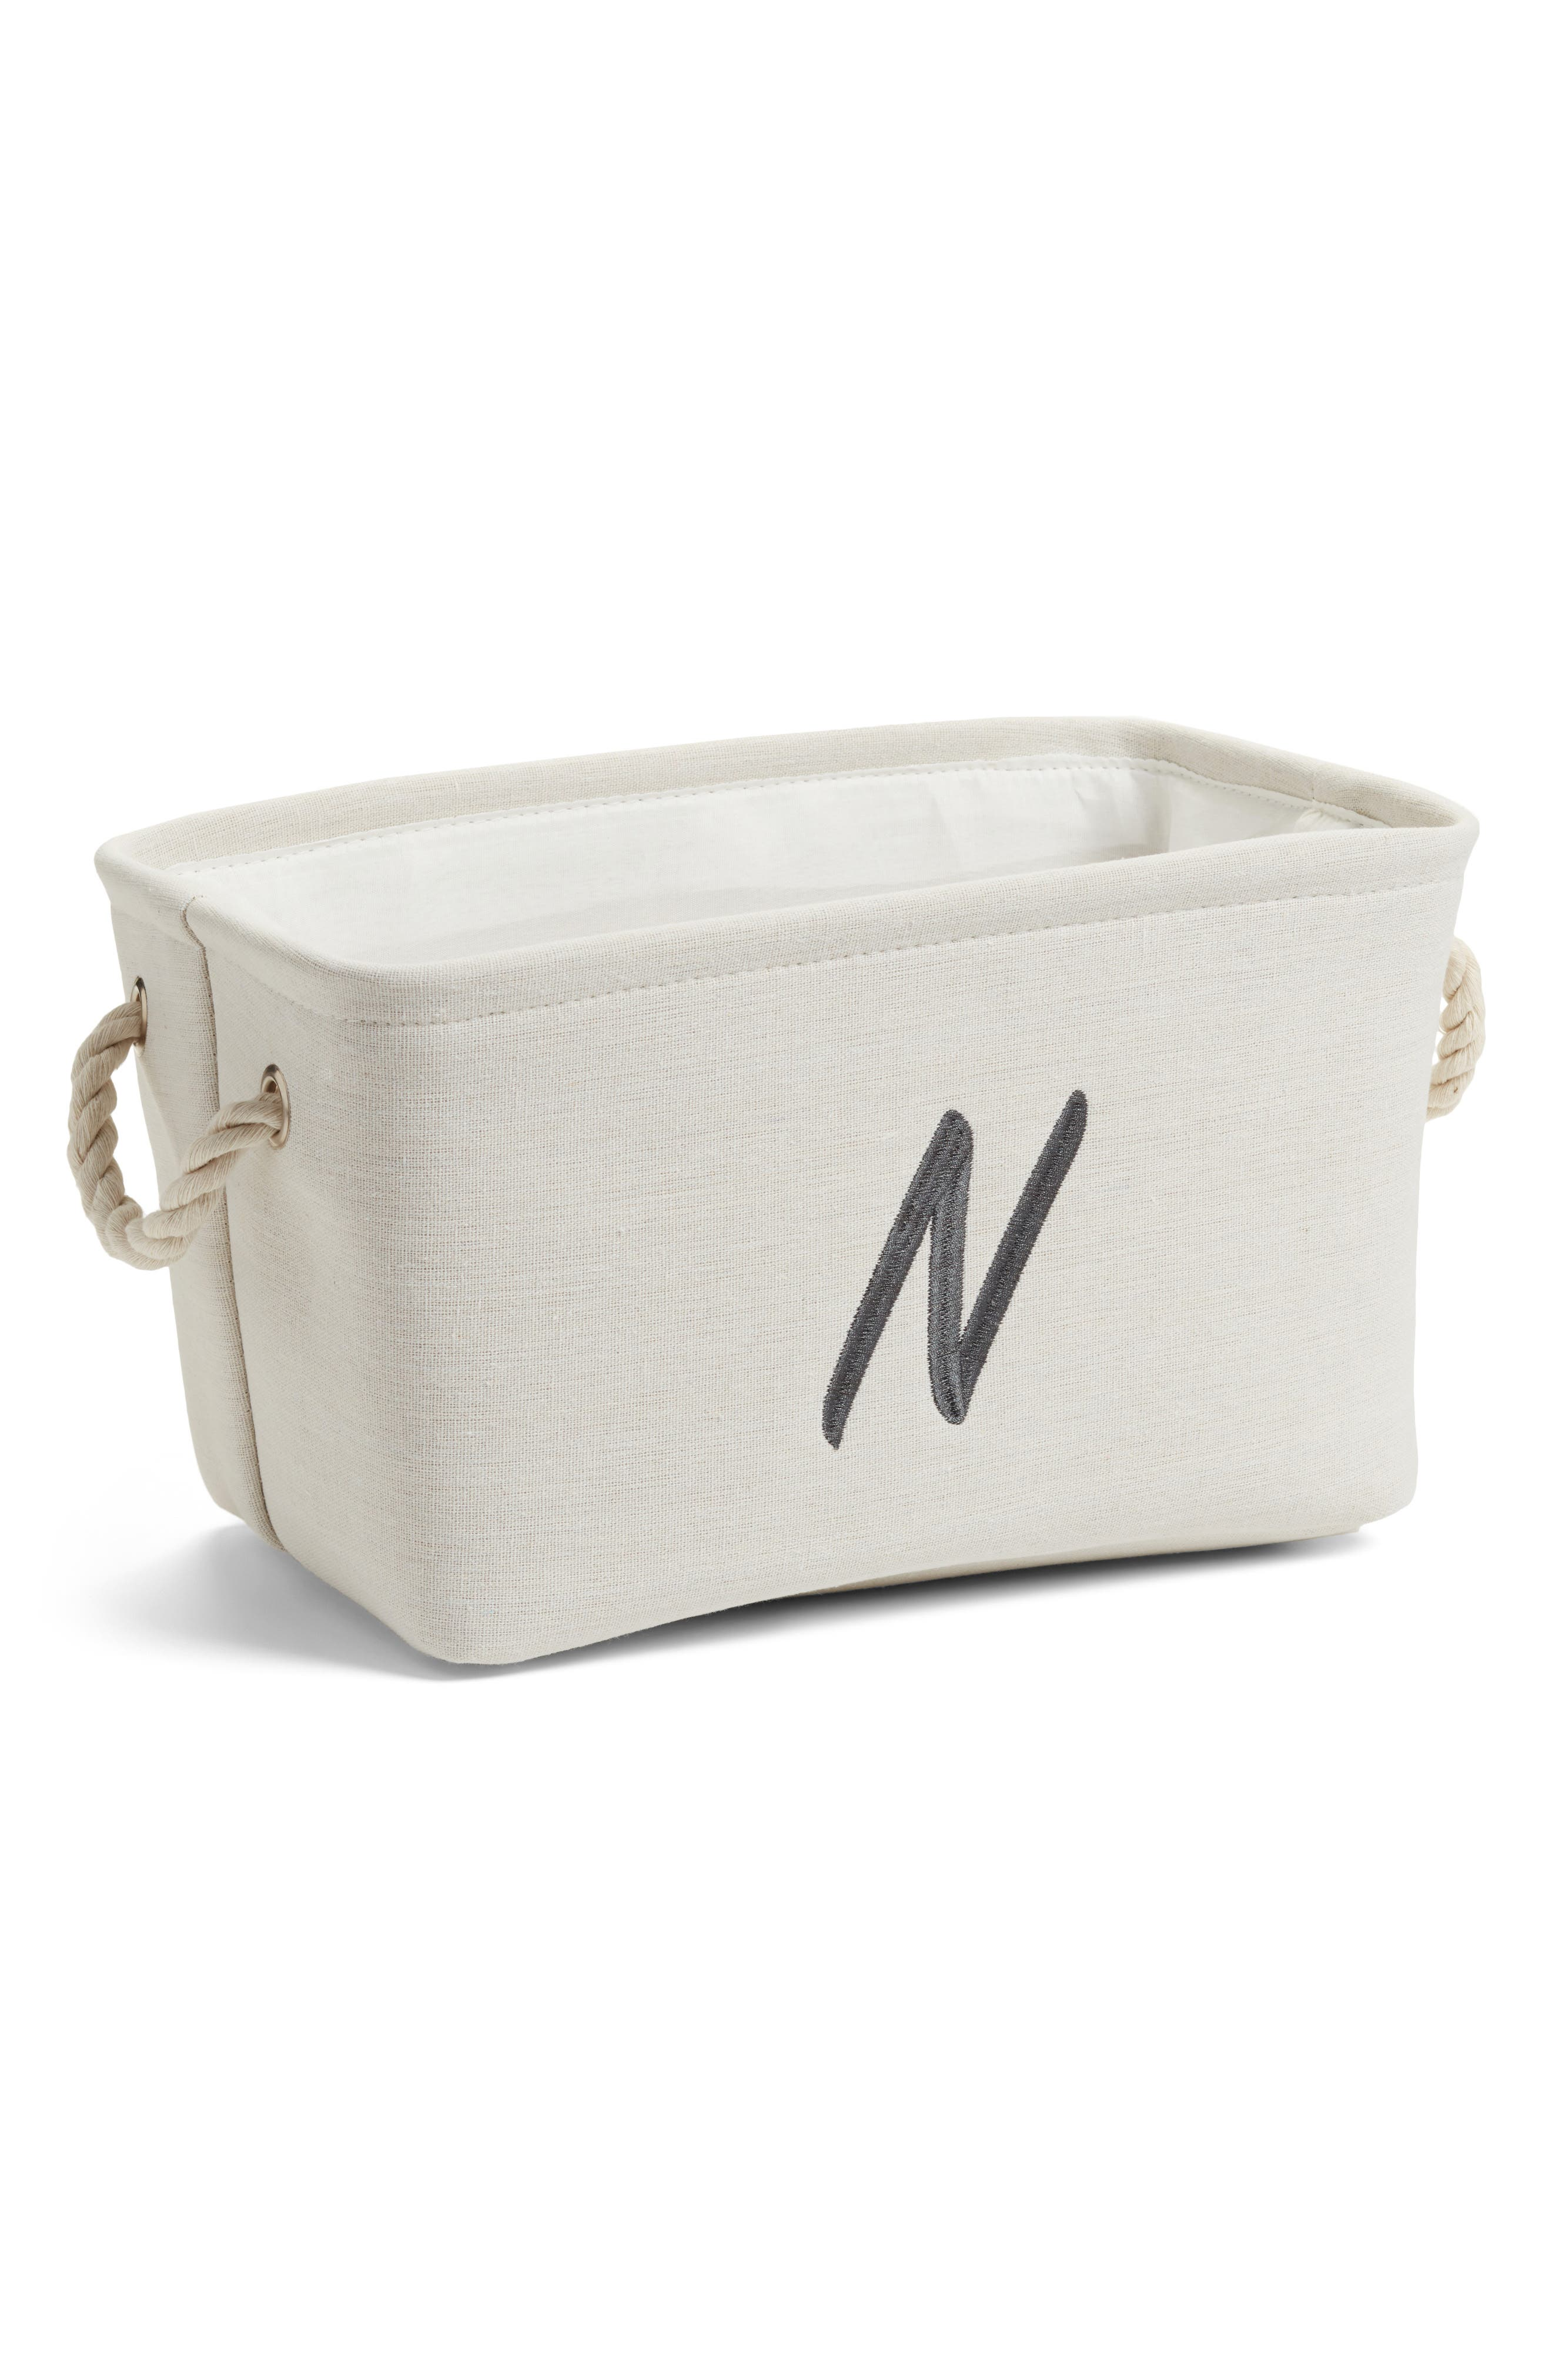 Initial Monogram Storage Basket,                         Main,                         color, Ivory-N